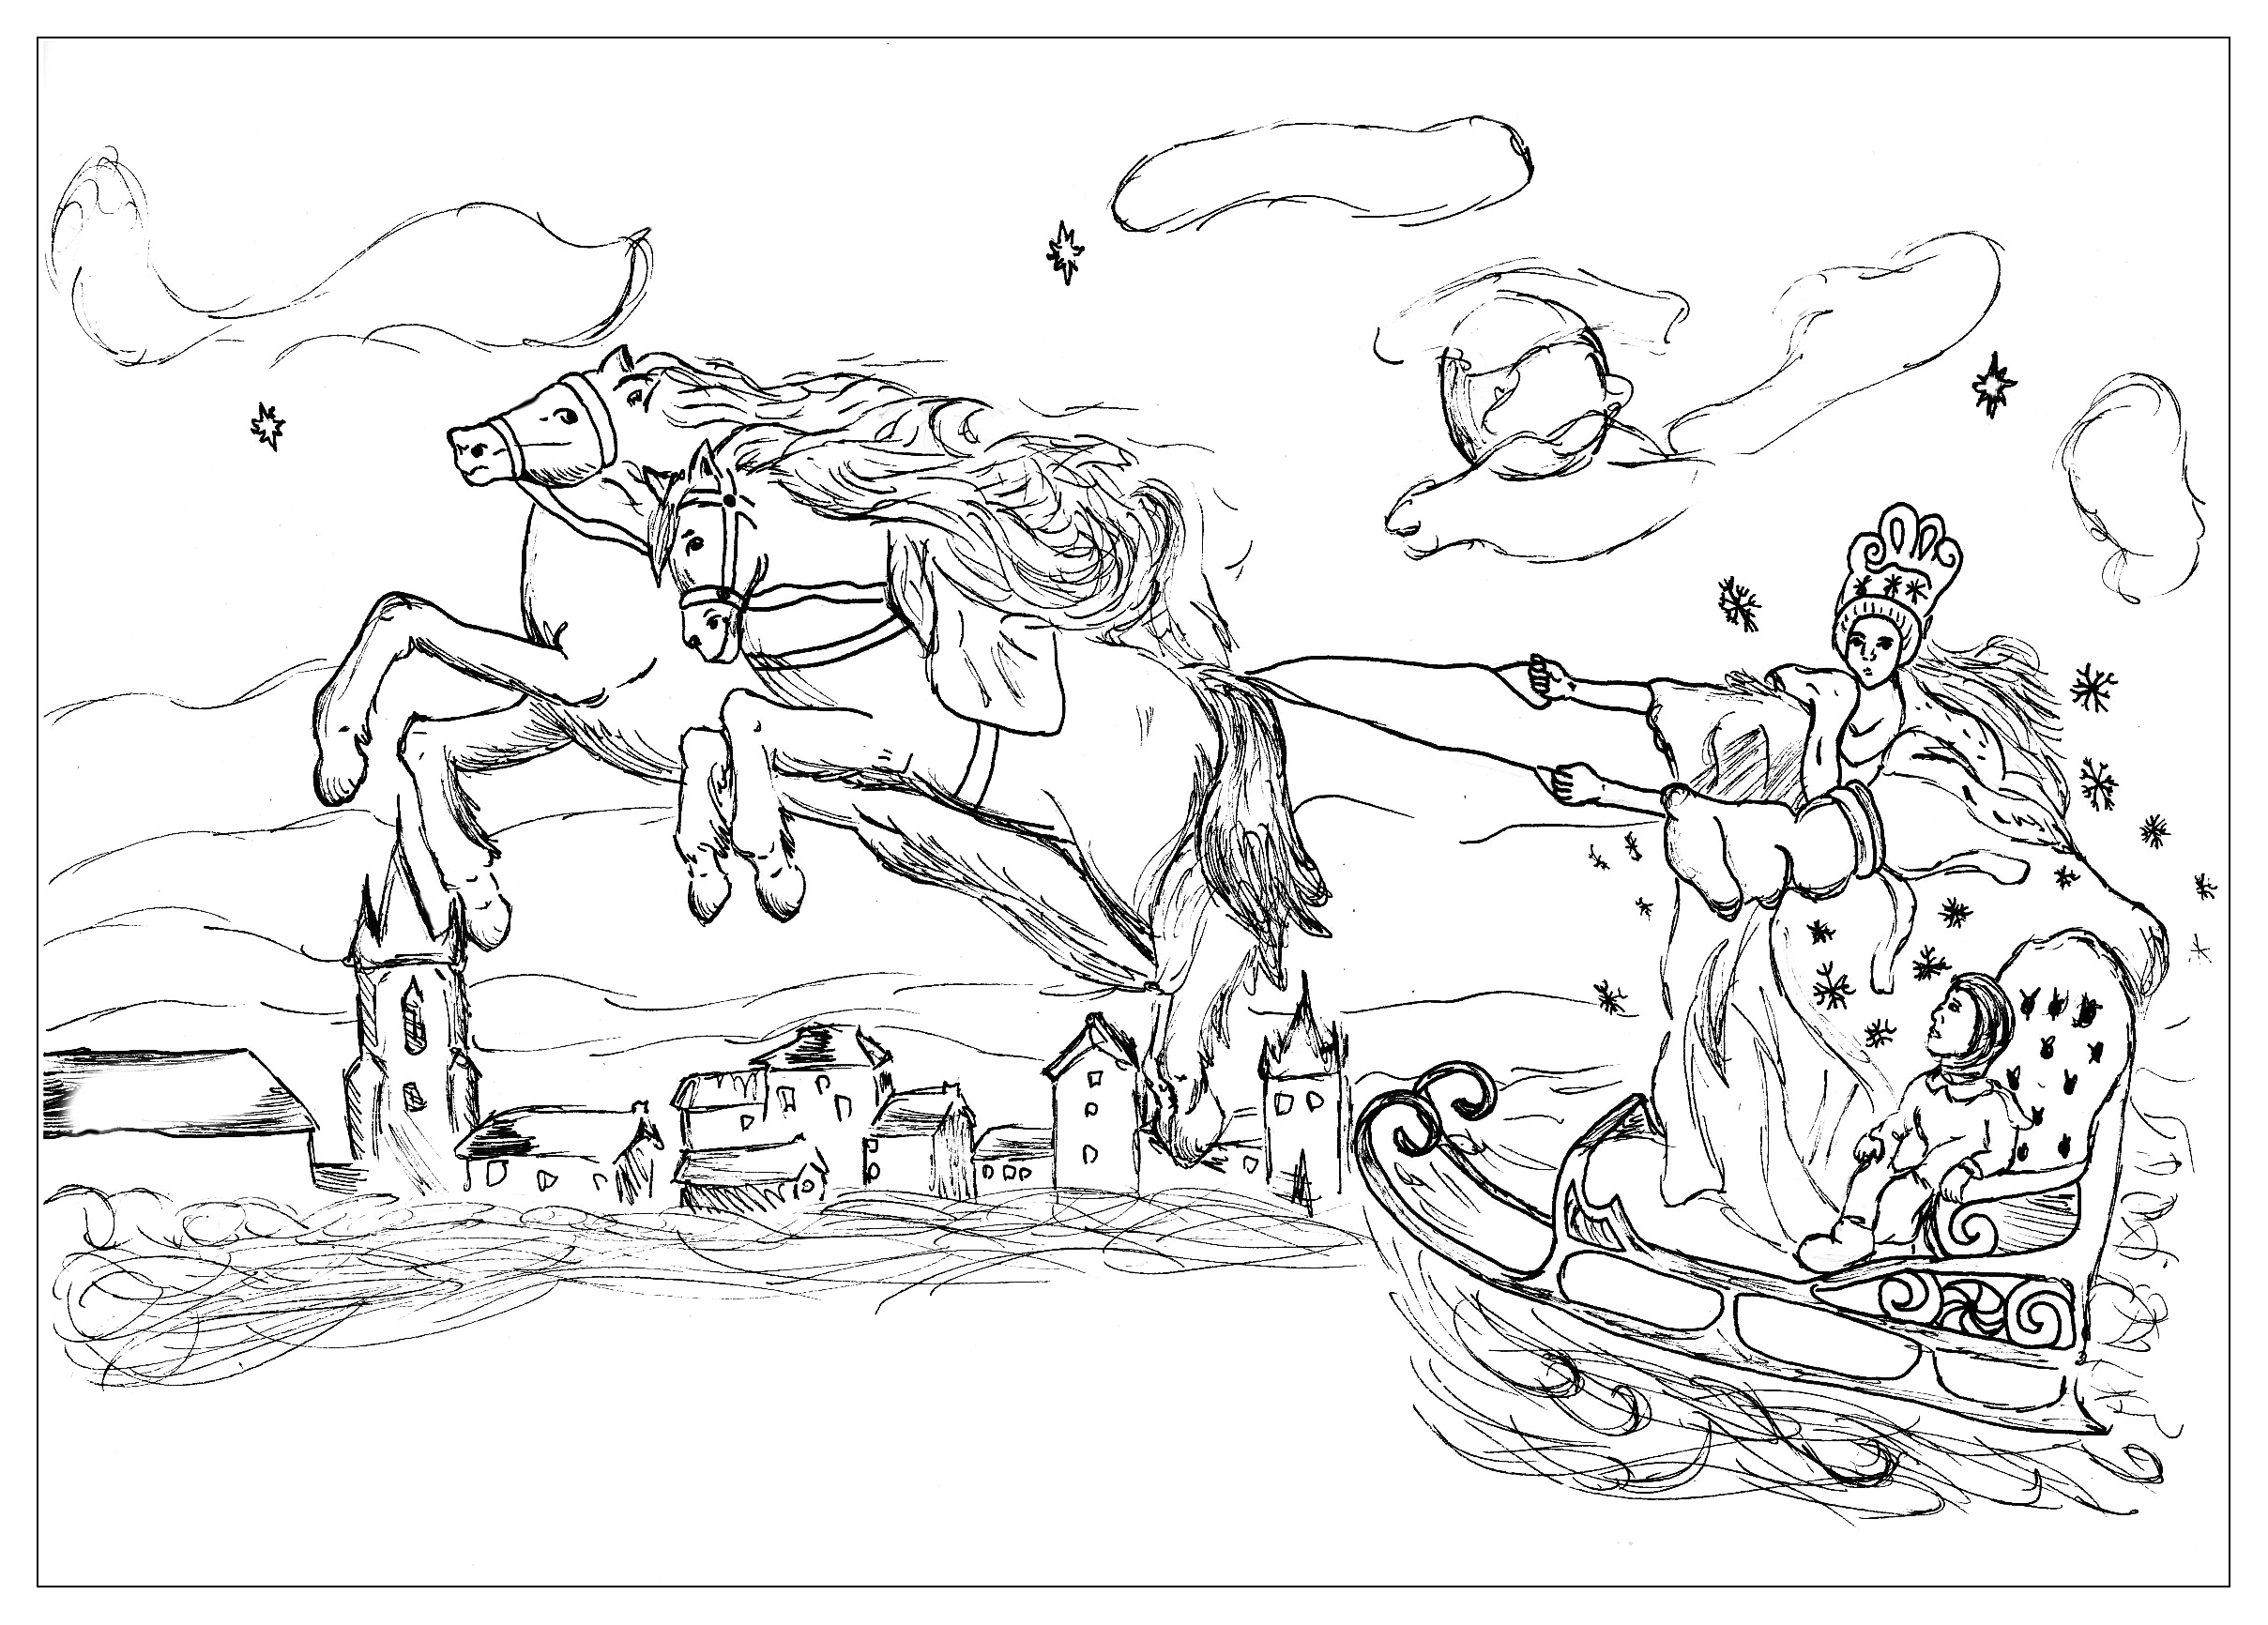 Coloring pages 3 billy goats gruff - Awesome Fairy Tale Coloring Pages To Print Printable Coloring Pages For With Three Billy Goats Gruff Coloring Pages